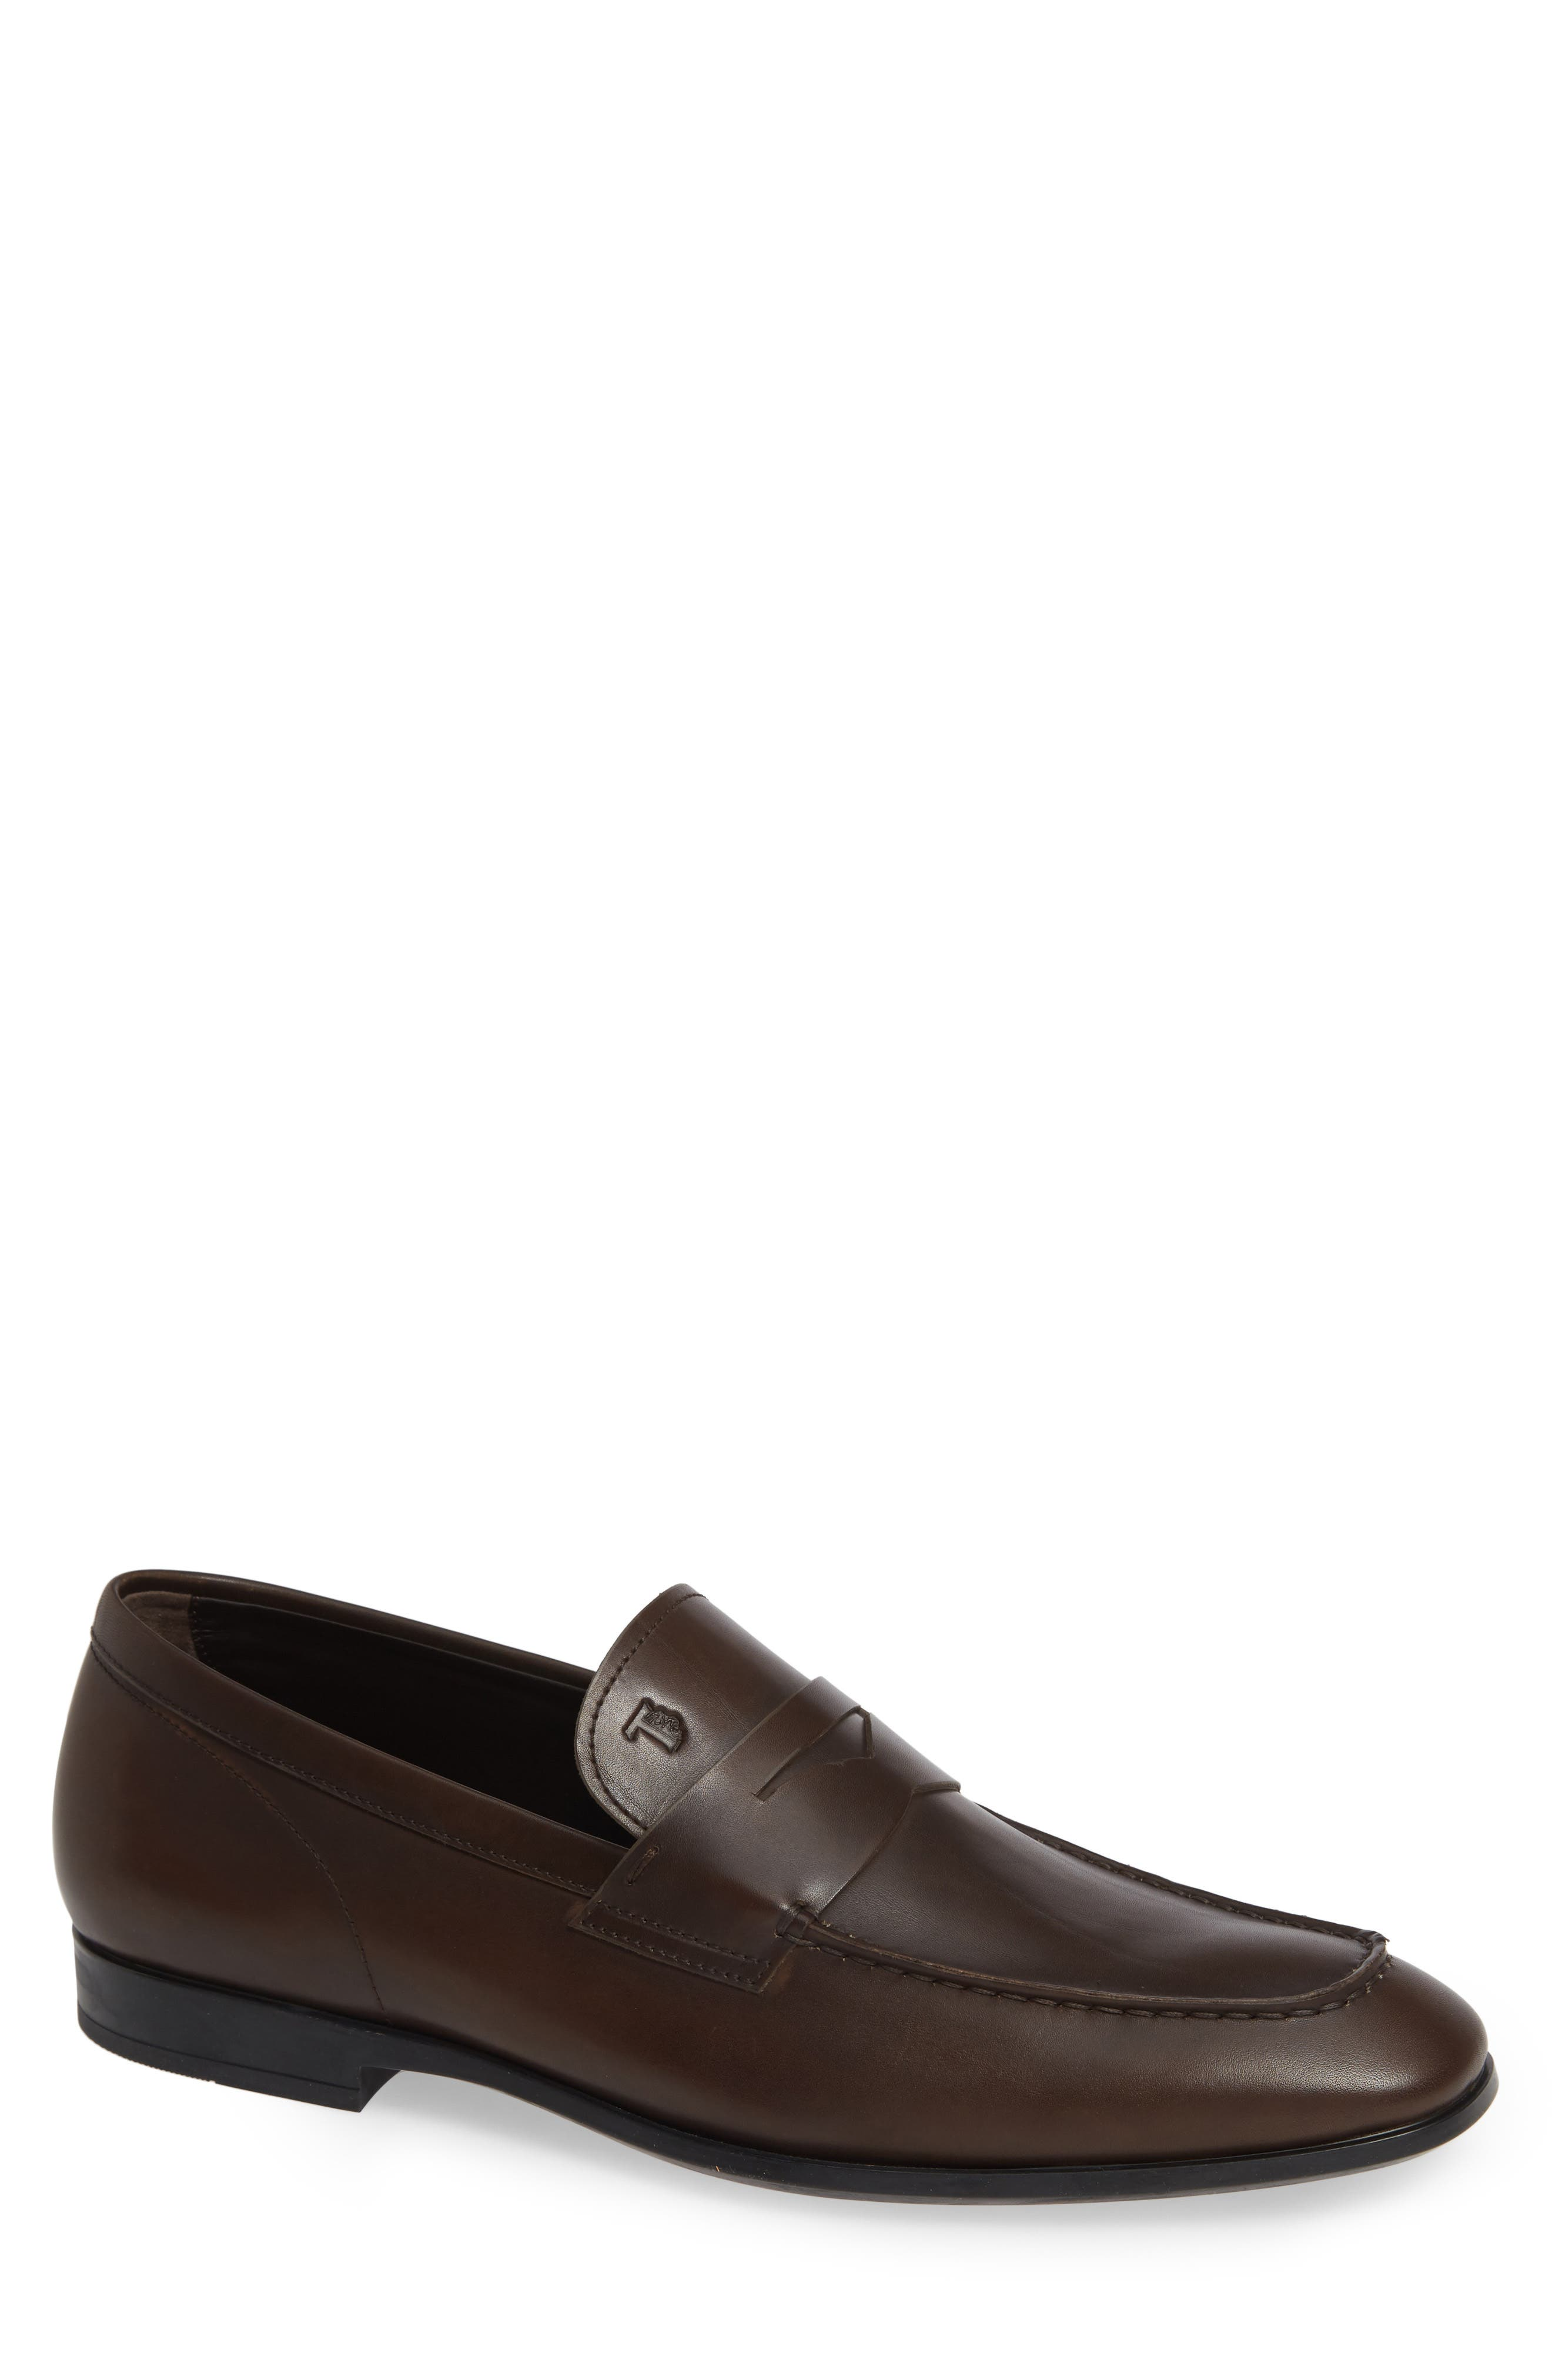 TOD'S, Mocassino Penny Loafer, Main thumbnail 1, color, DARK BROWN